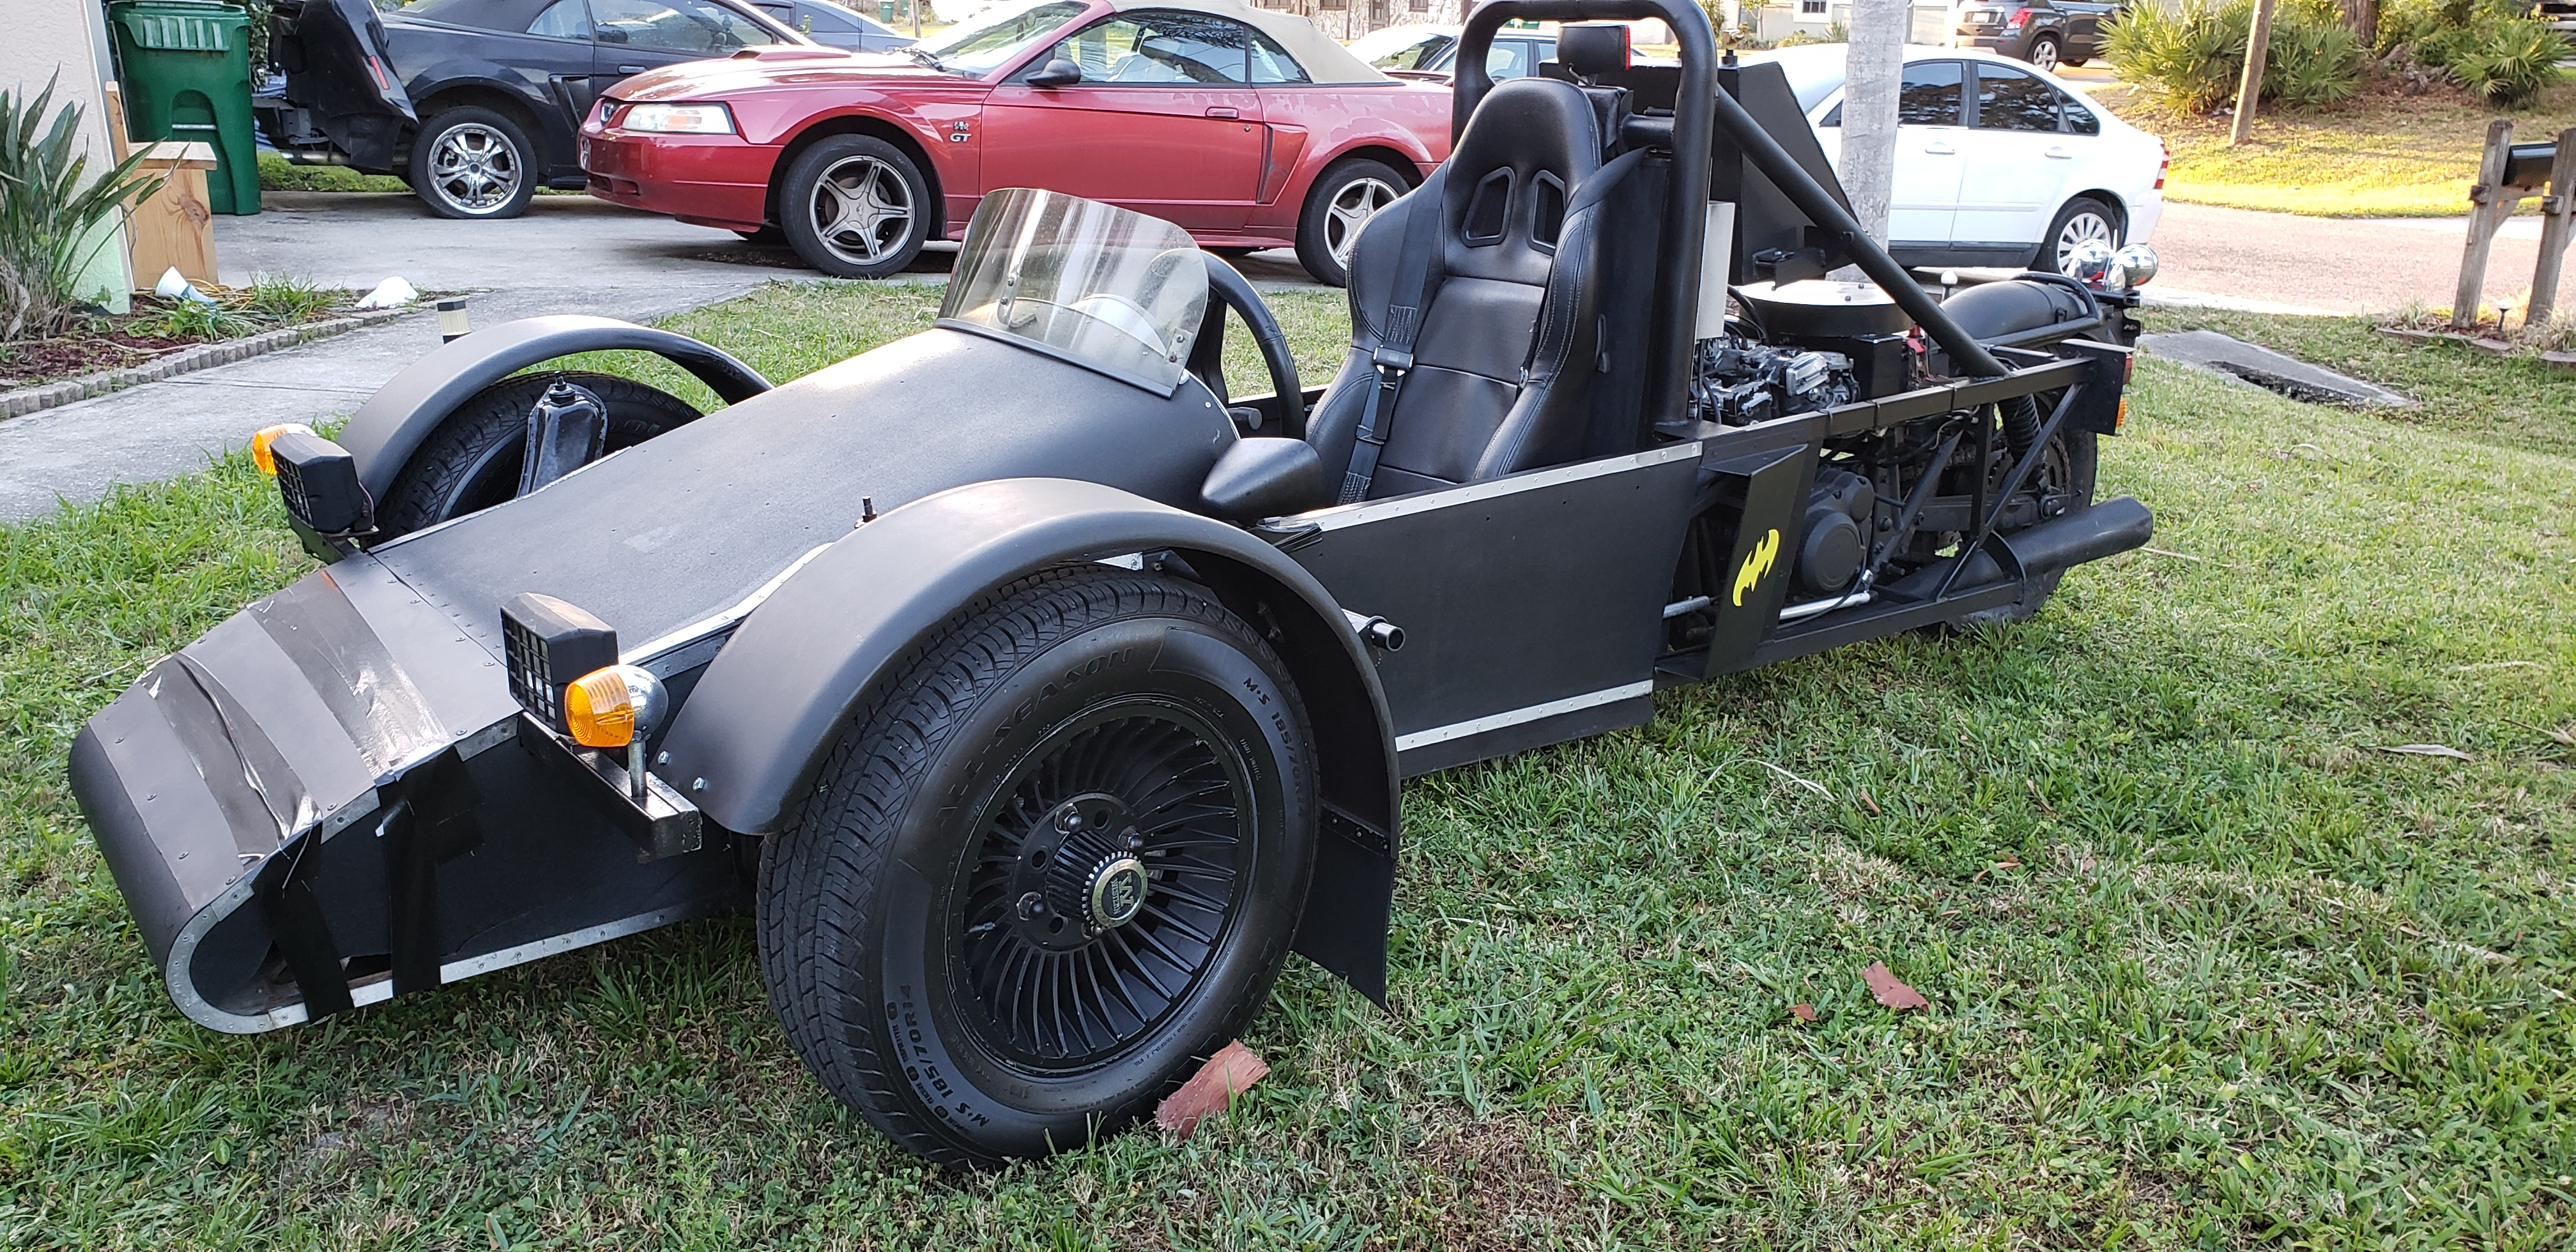 HELP i want to build a cheap fuel efficient car/trike